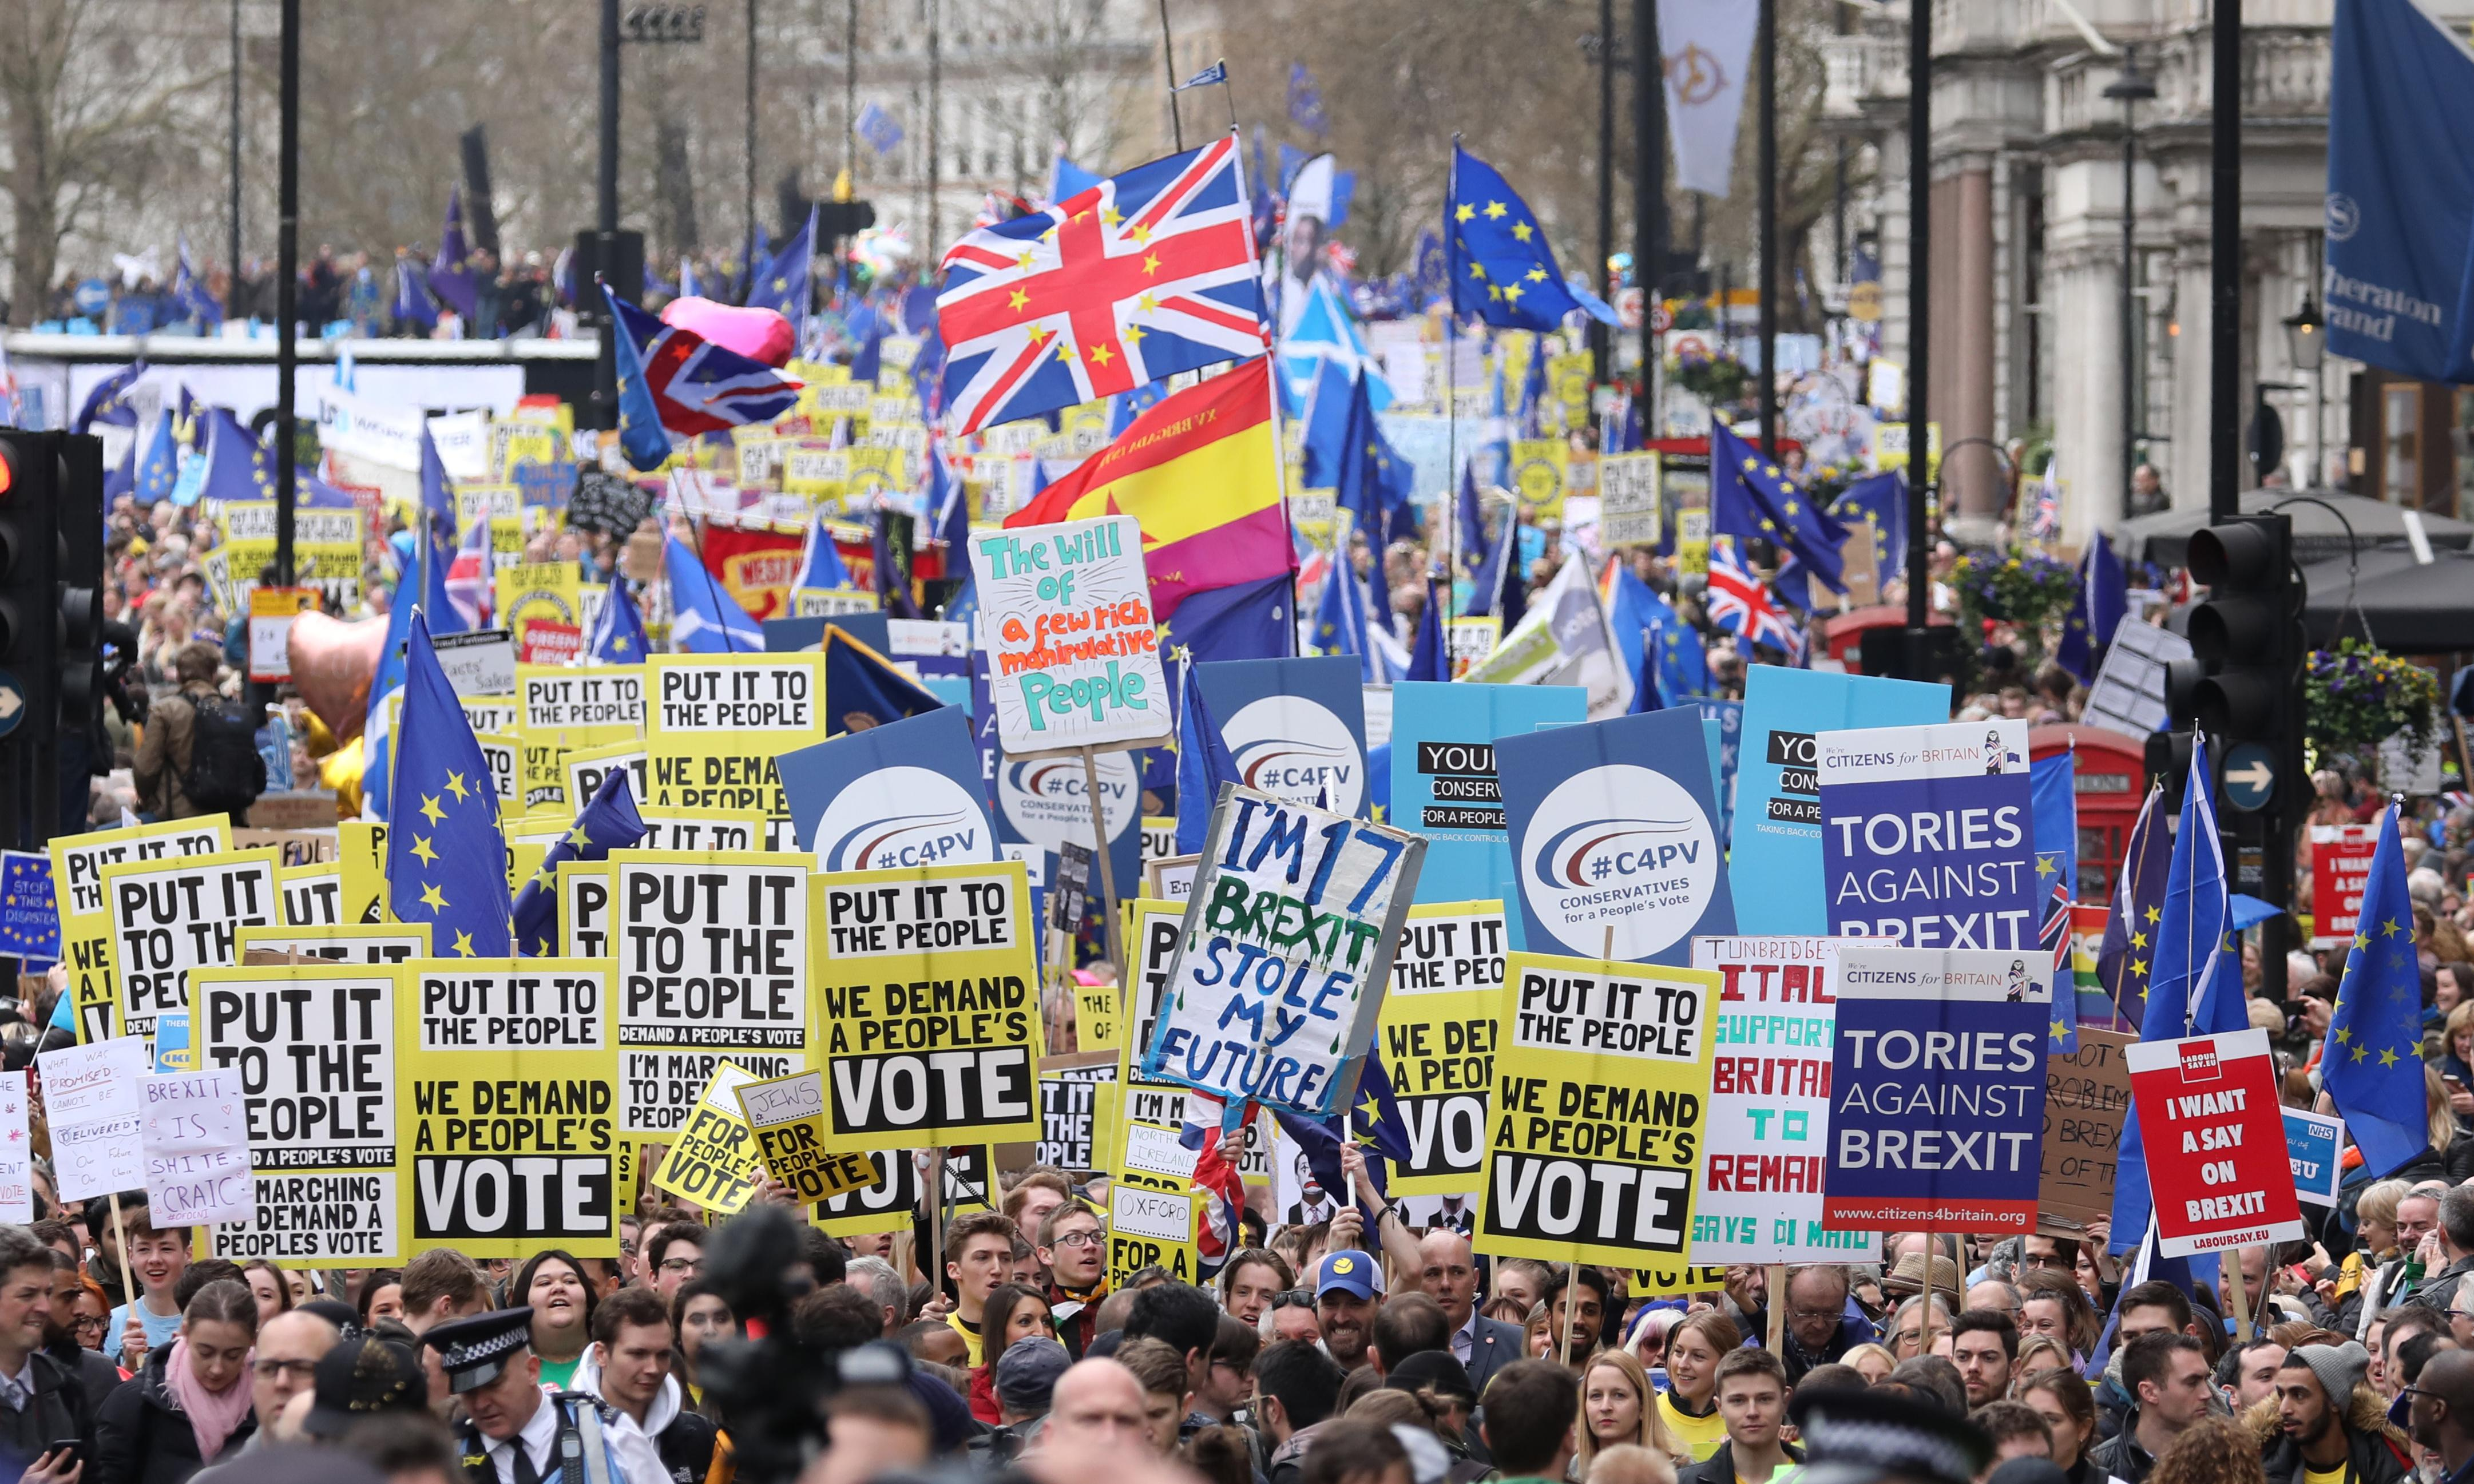 Britain is now a remain nation. We can halt this rush to Brexit